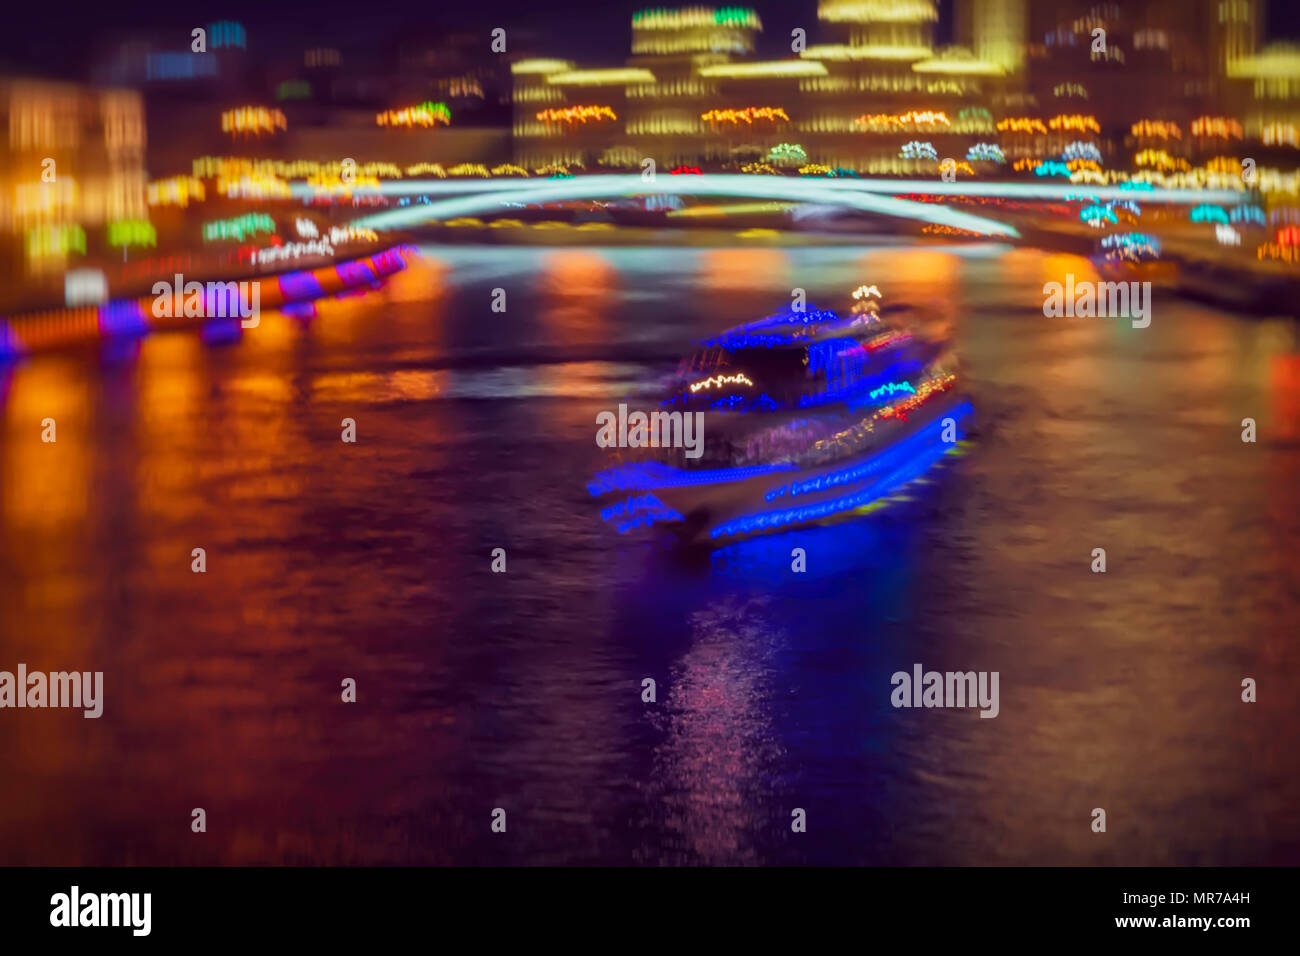 Bright blurred colorful abstract background of night city with ship for travels, excursions. Neon reflections on water - Stock Image